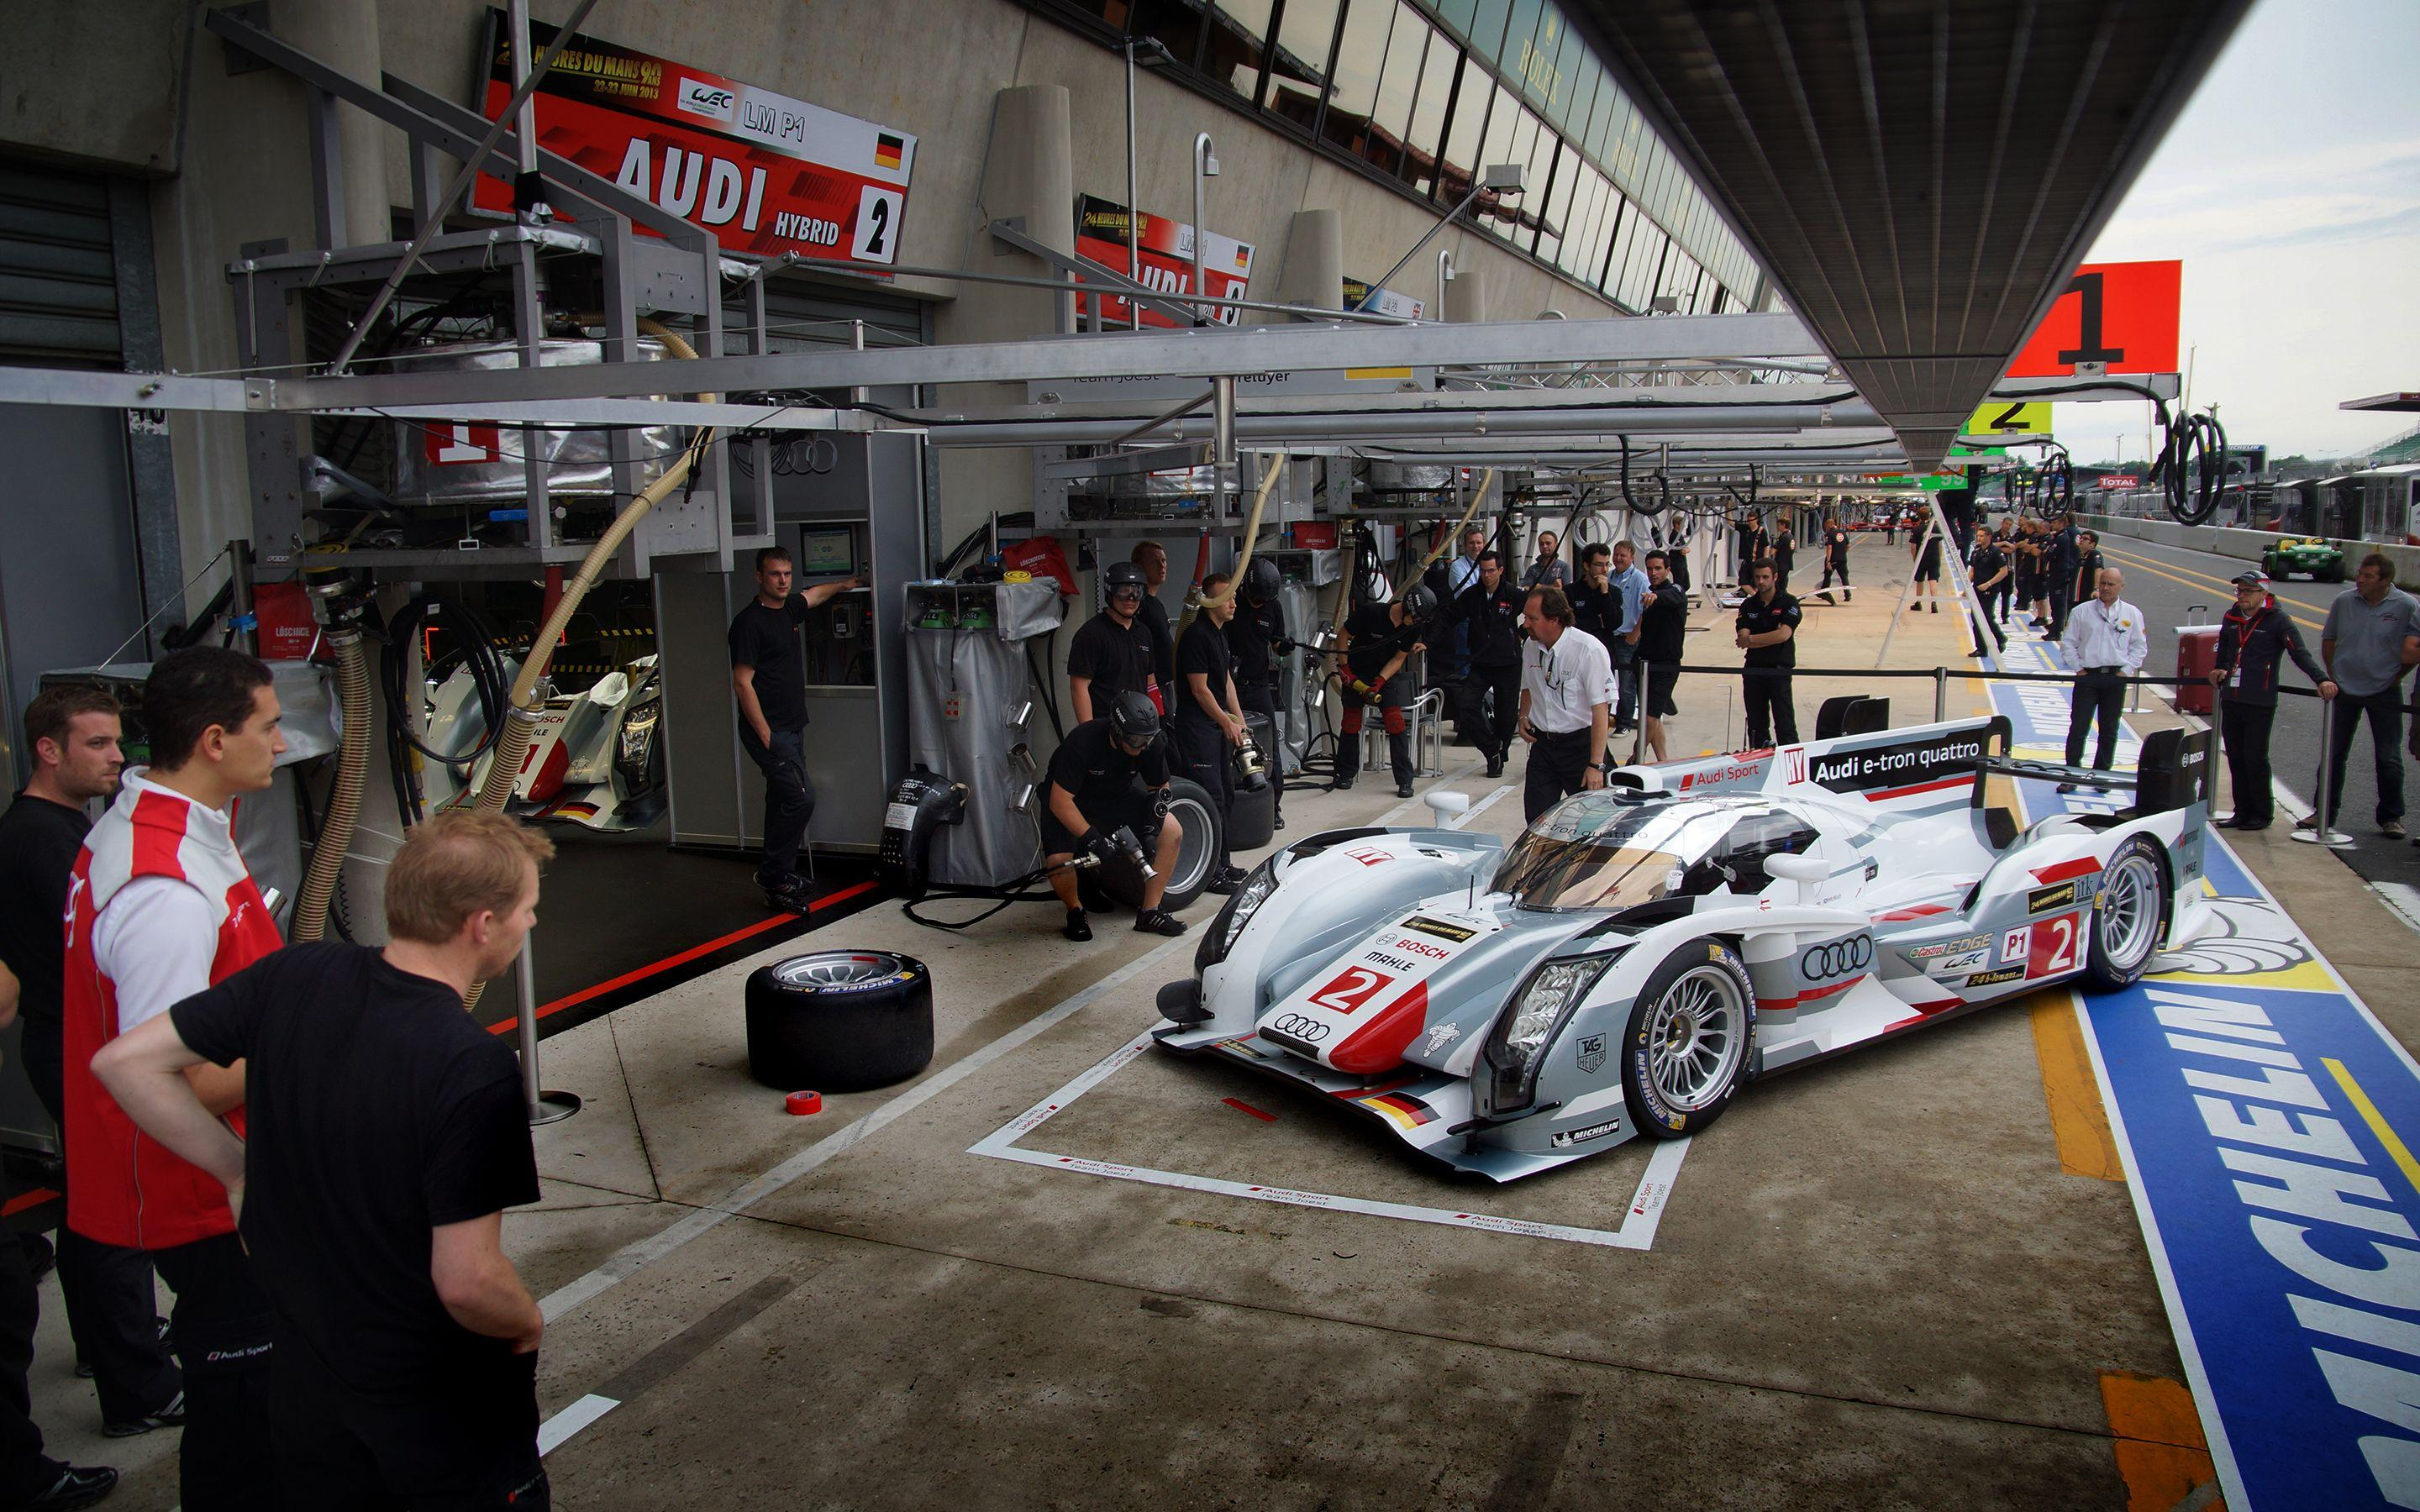 WotD: Pit Practice at the 24 Hours of Le Mans